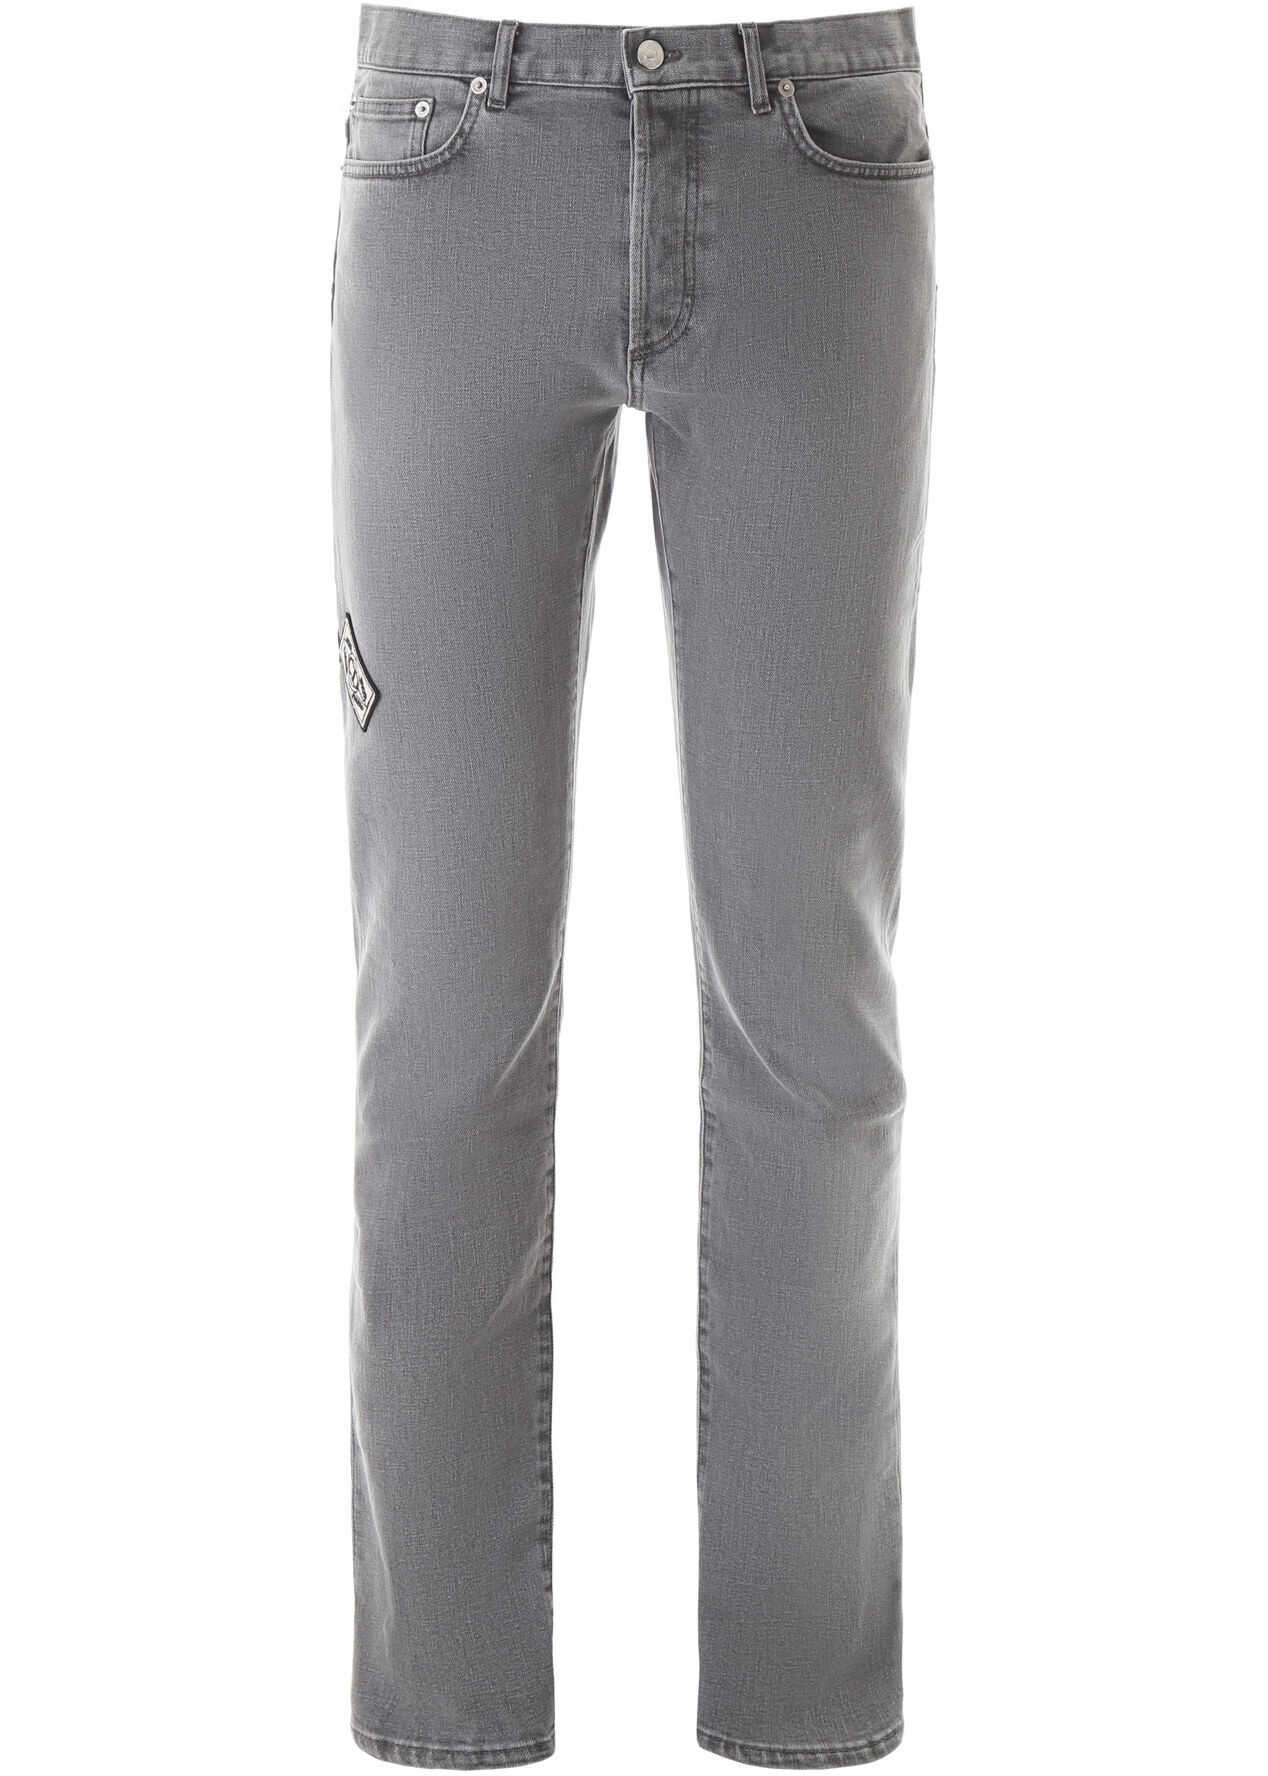 Dior Jeans With Archives Patches LIGHT GREY